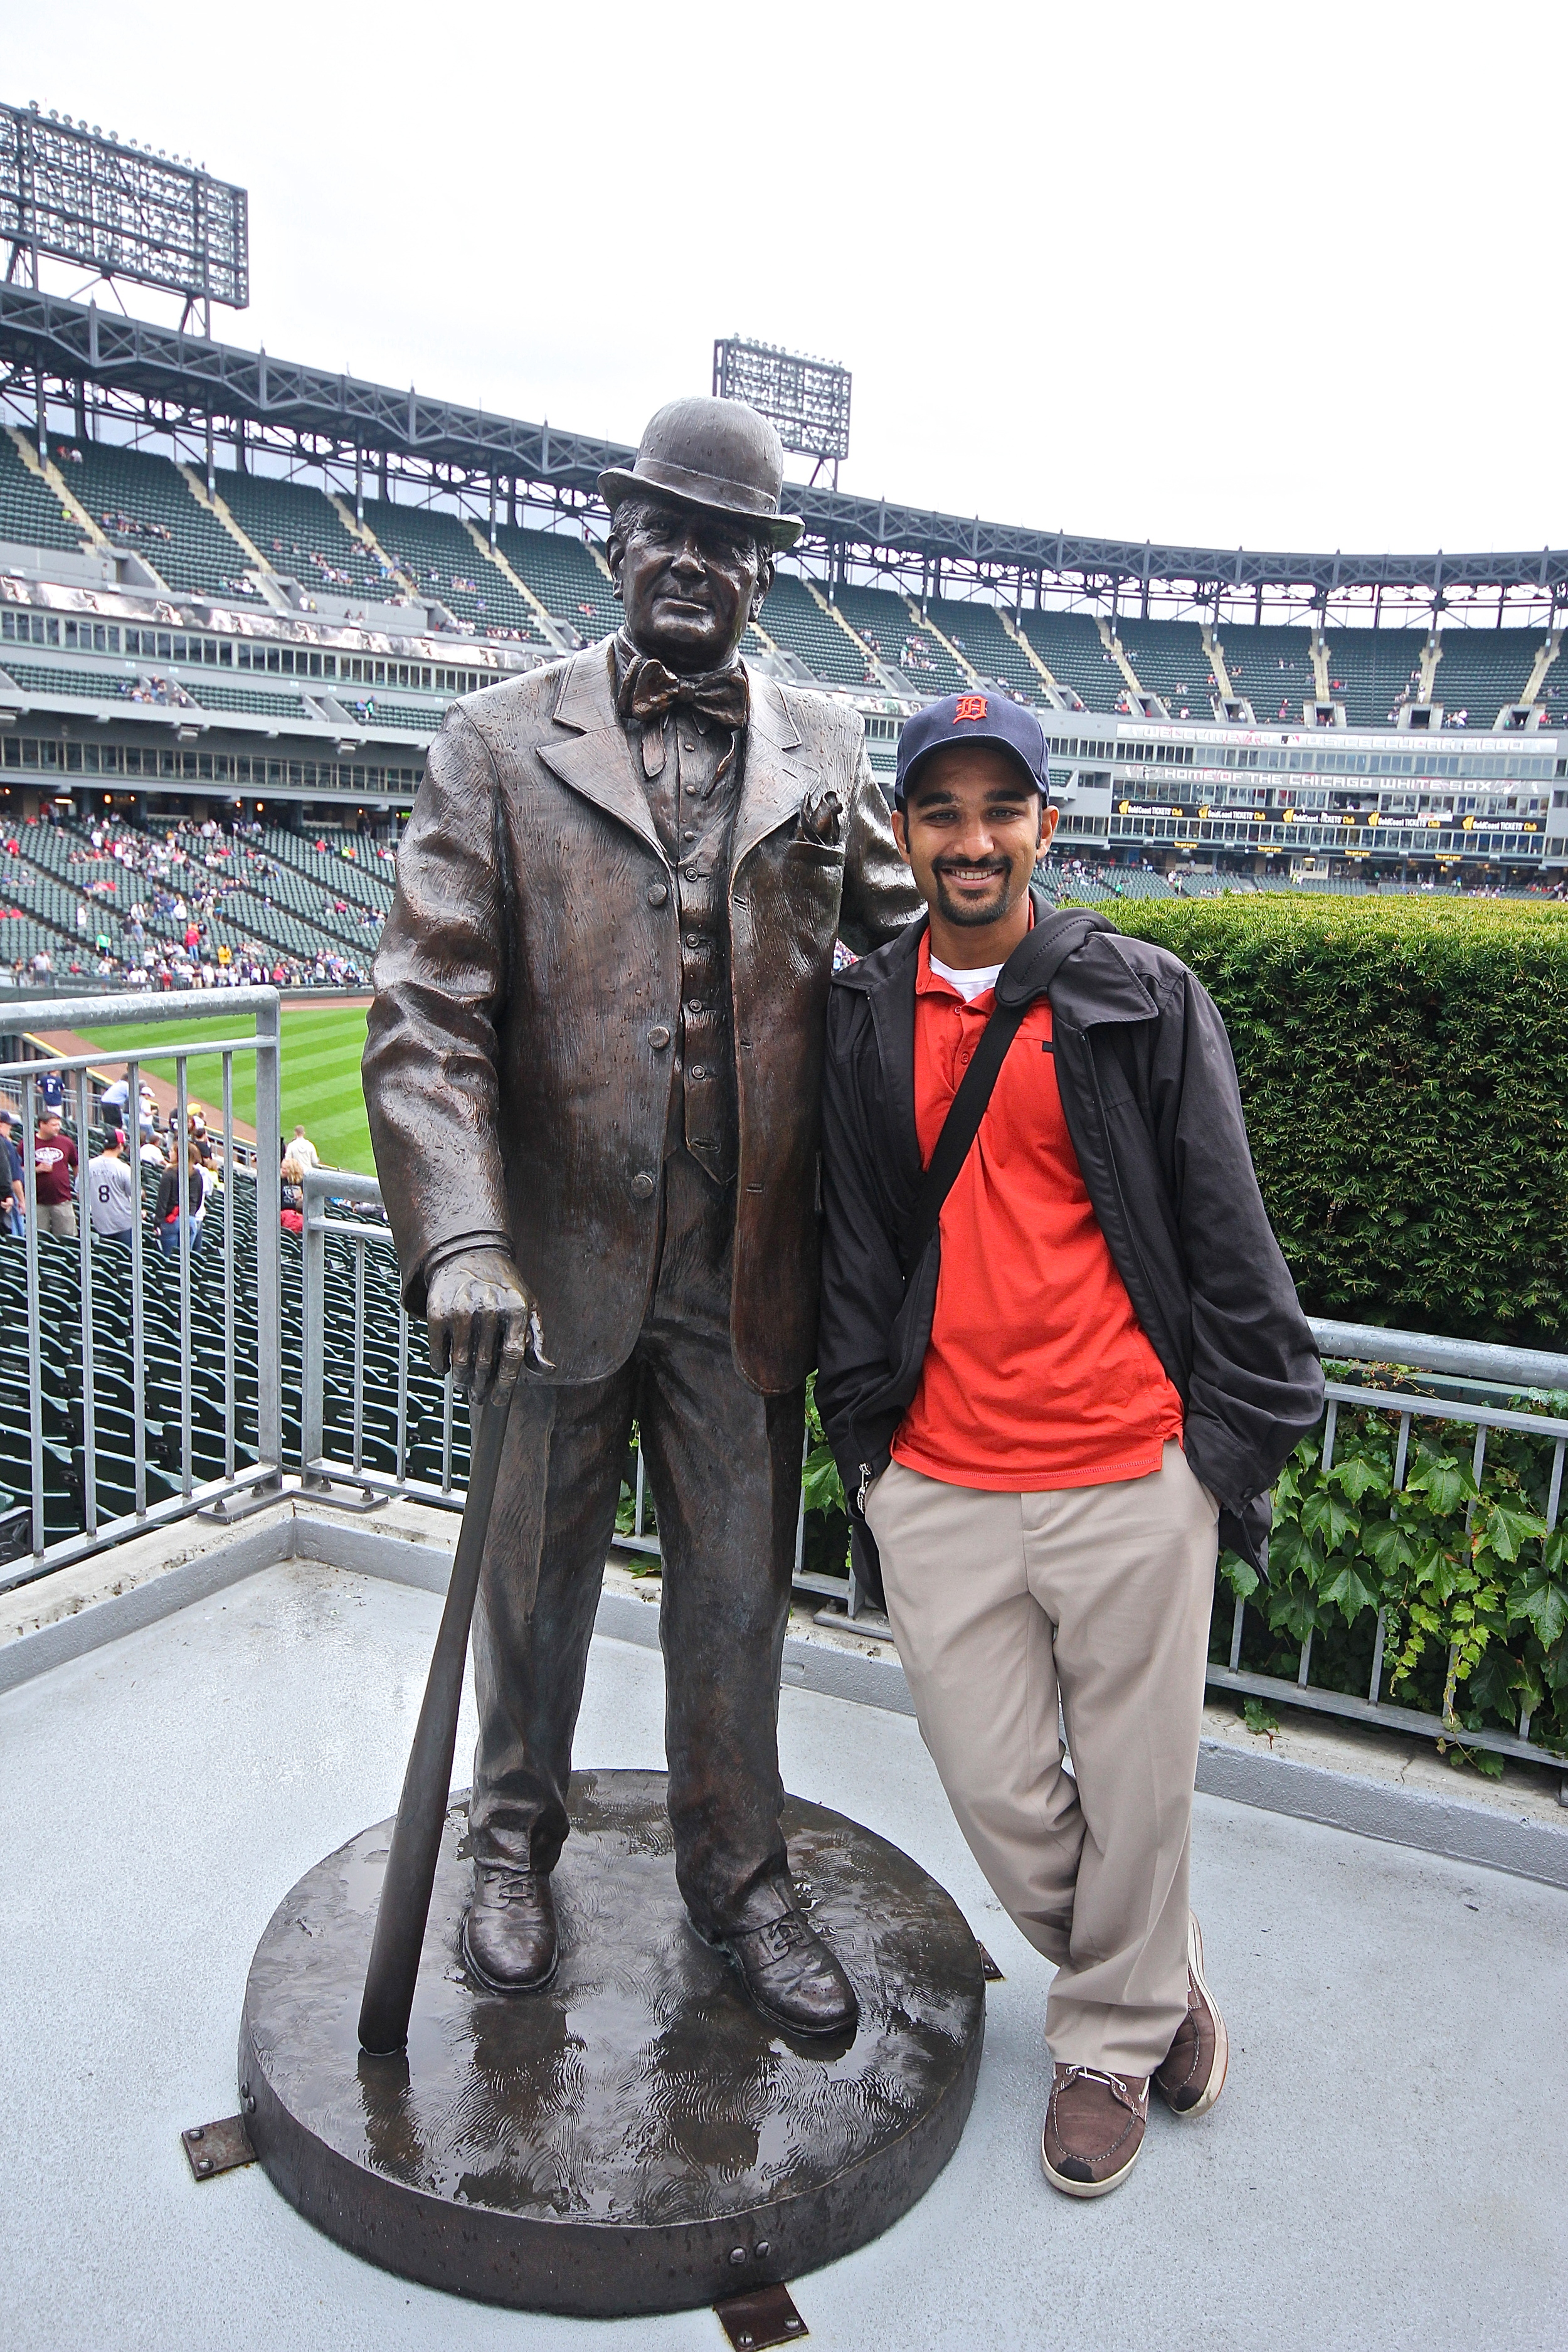 Me and Charles Comiskey